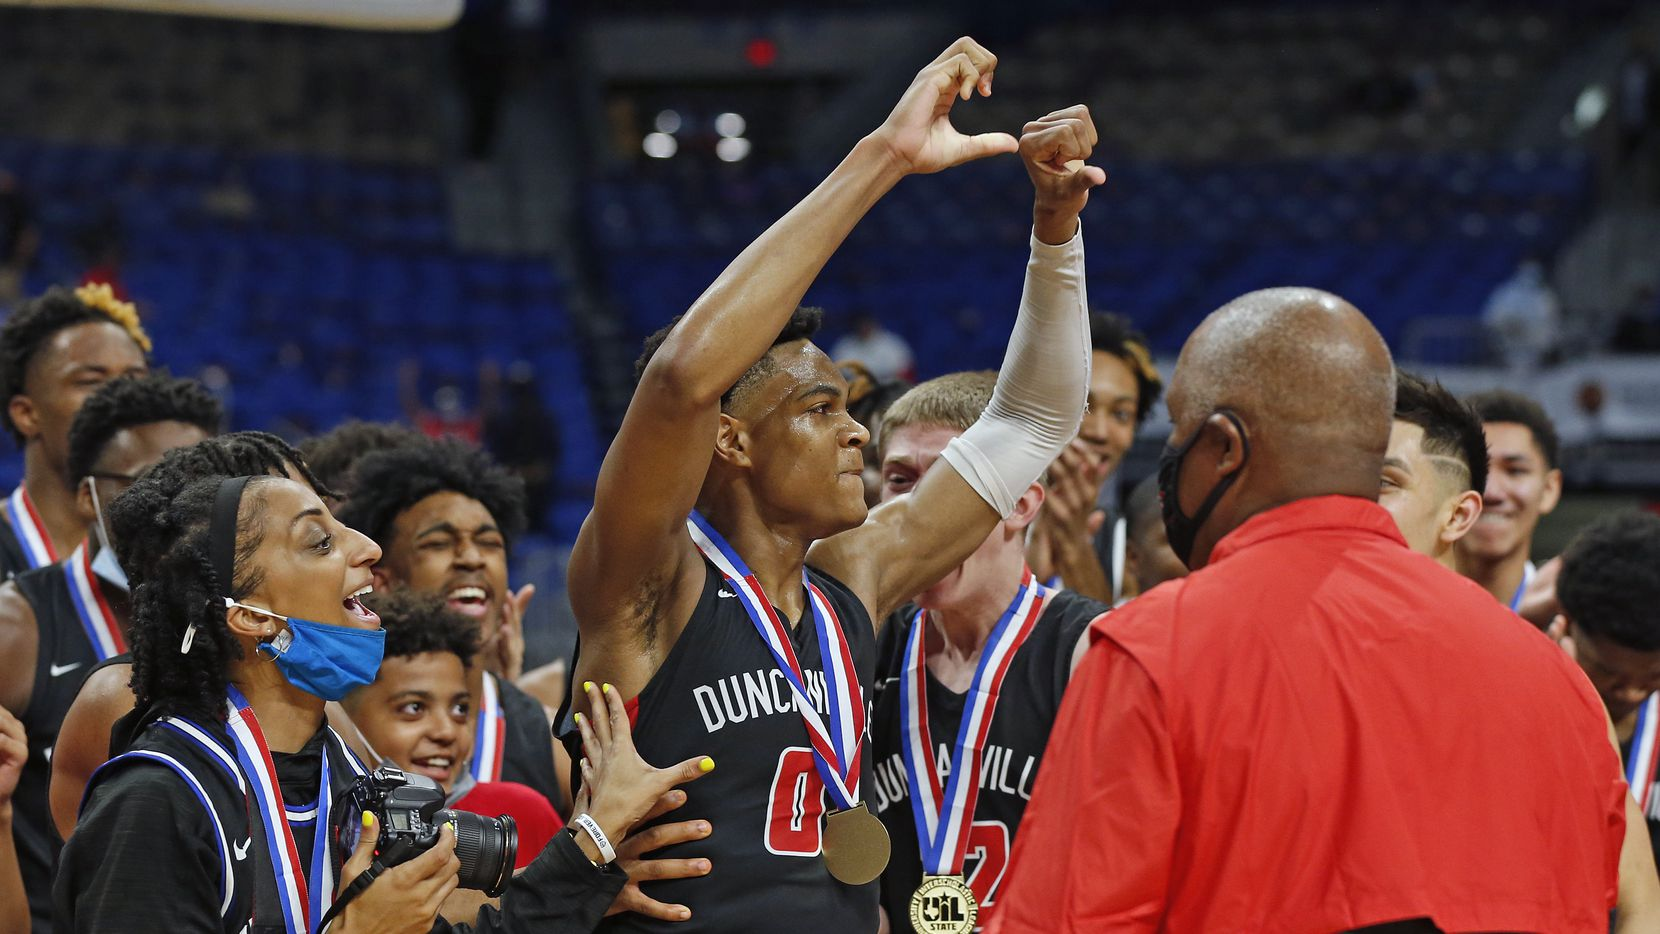 Duncanville Zhuric Phelps #0 reacts after receiving the most valuable player. UIL boys Class 6A basketball state championship game between Duncanville and Austin Westlake on Saturday, March 13, 2021 at the Alamodome.